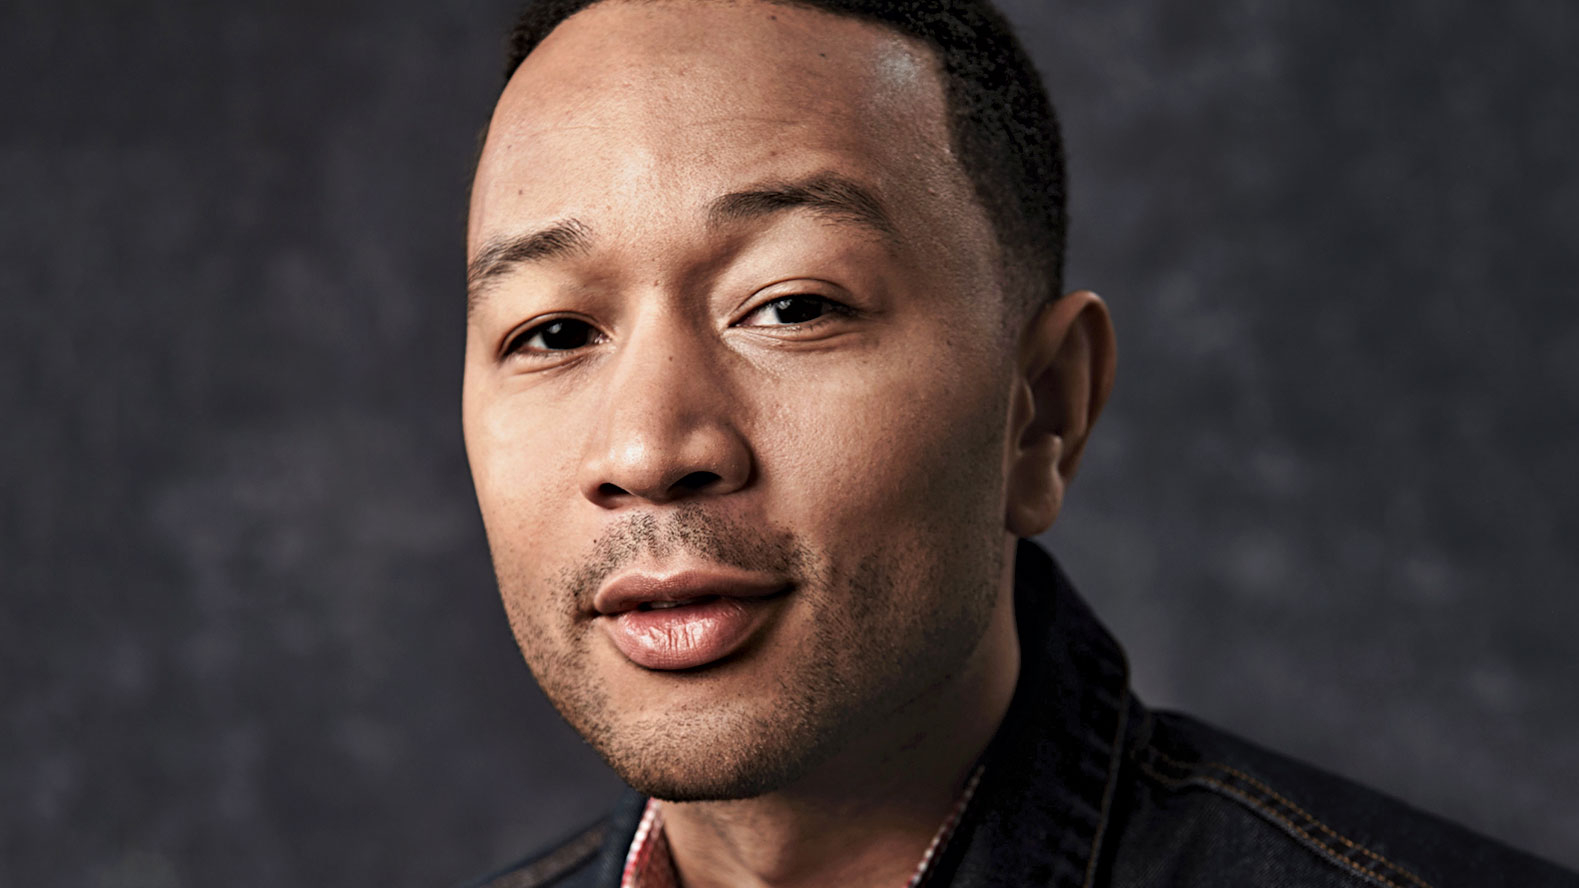 John Legend on His Friend Kanye, How Artists Should Respond to Trump